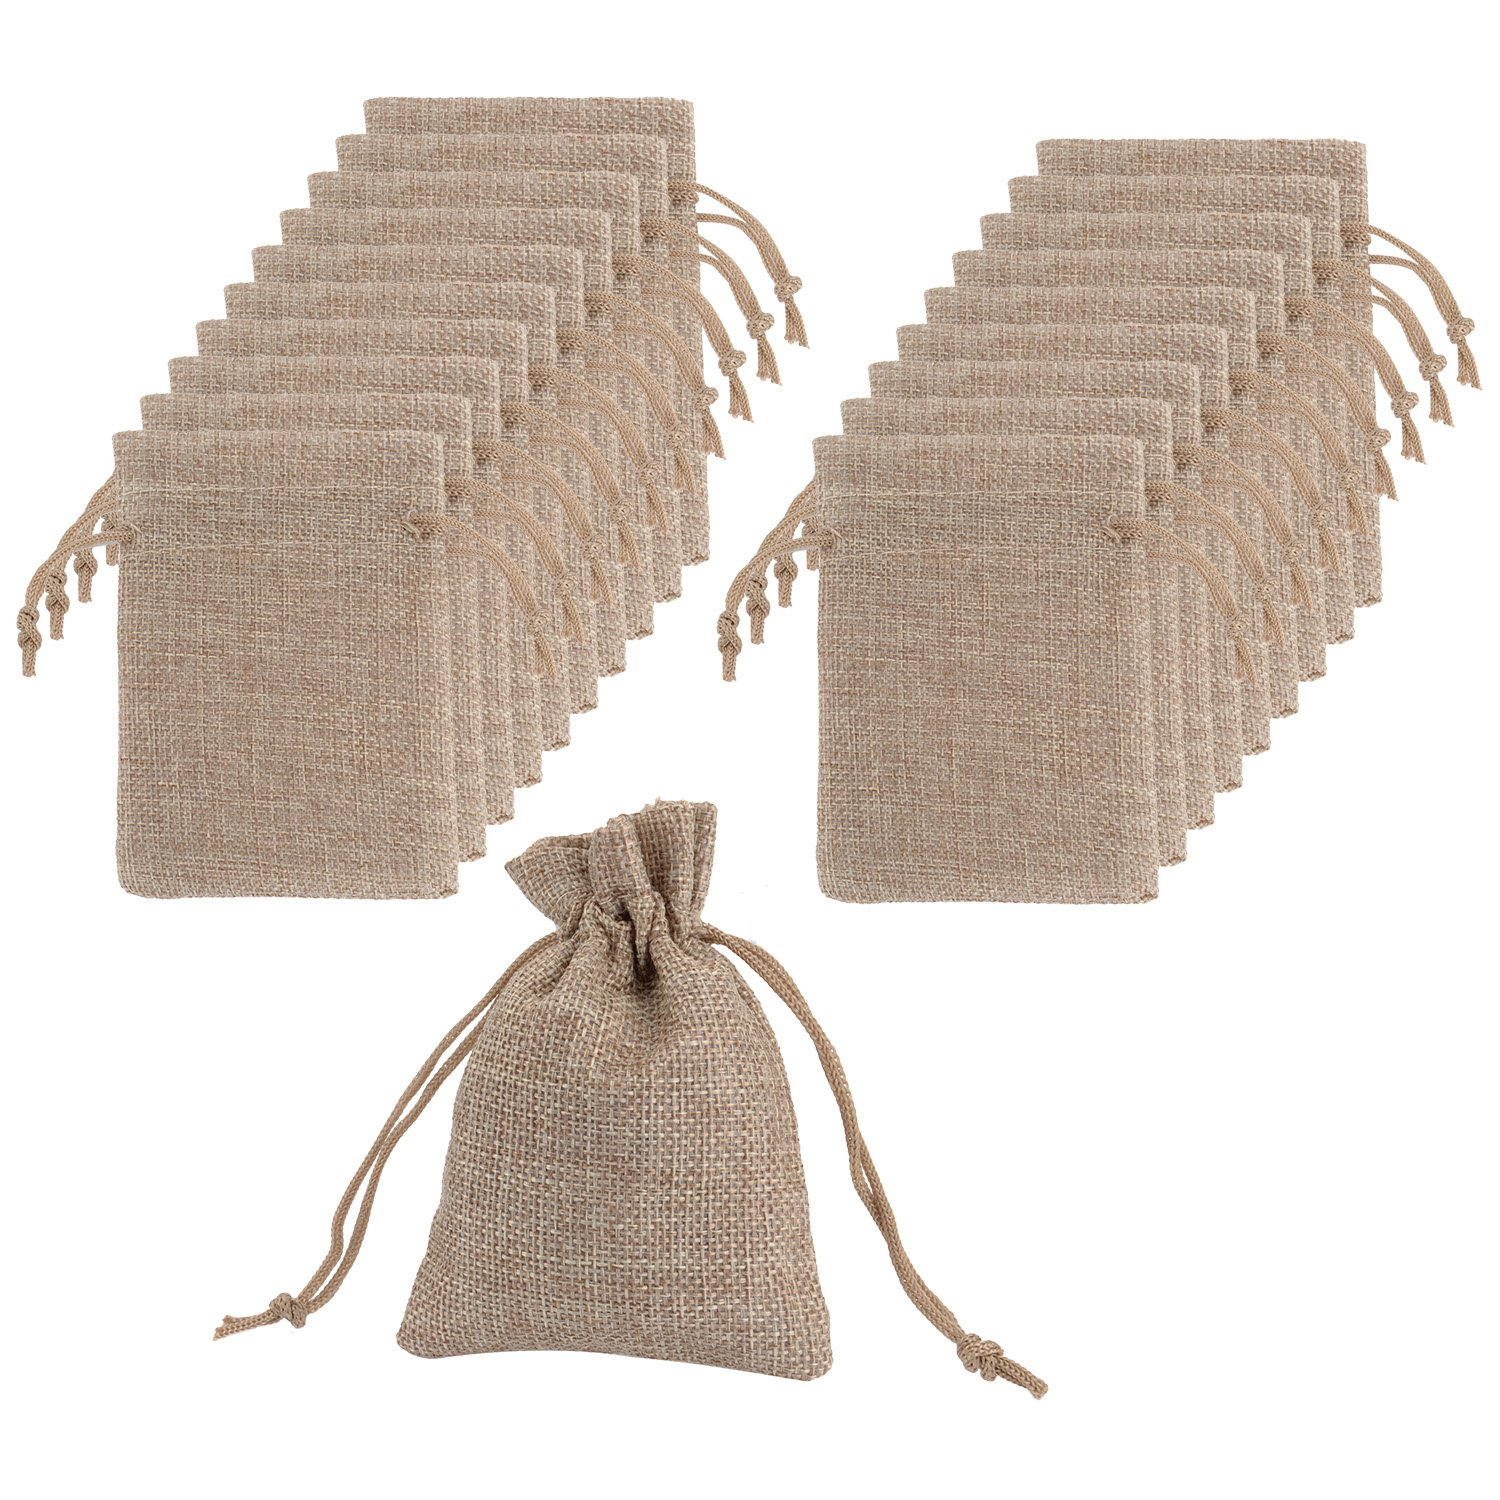 Amazon.com: Hapdoo 30 Pack Burlap Bags with Drawstring Gift Bags ...